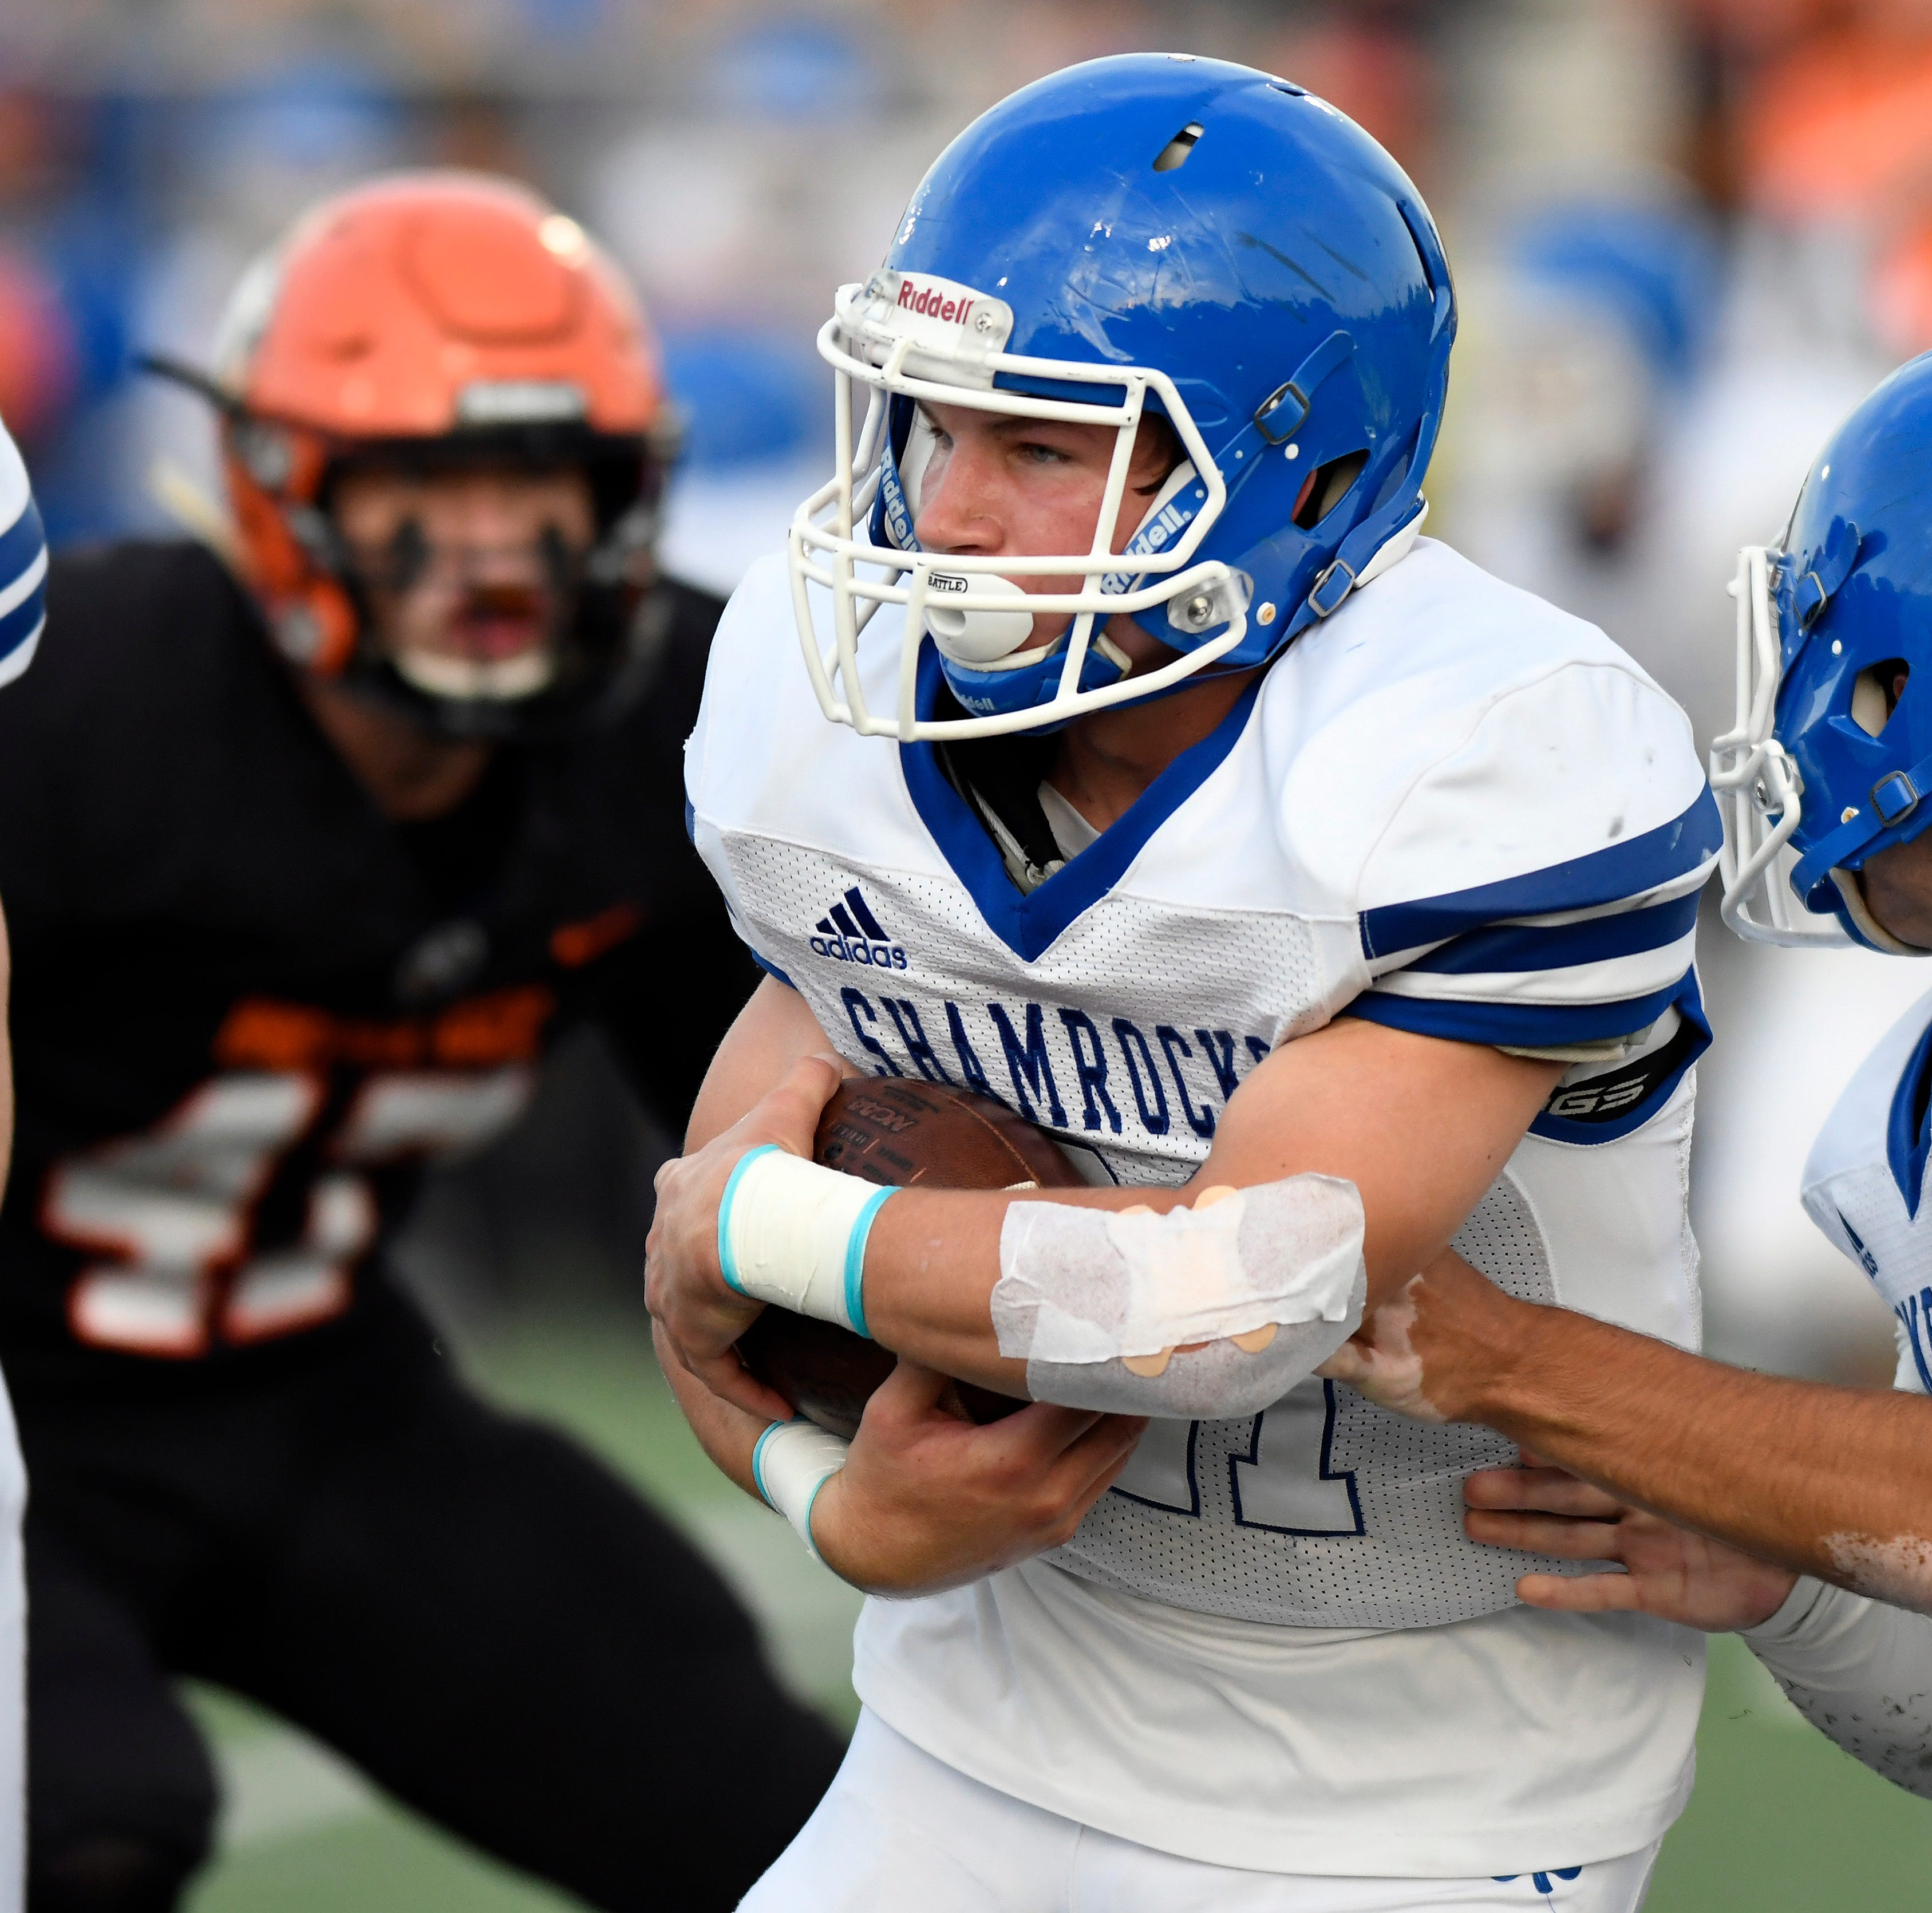 Catholic Central 21, Brother Rice 0